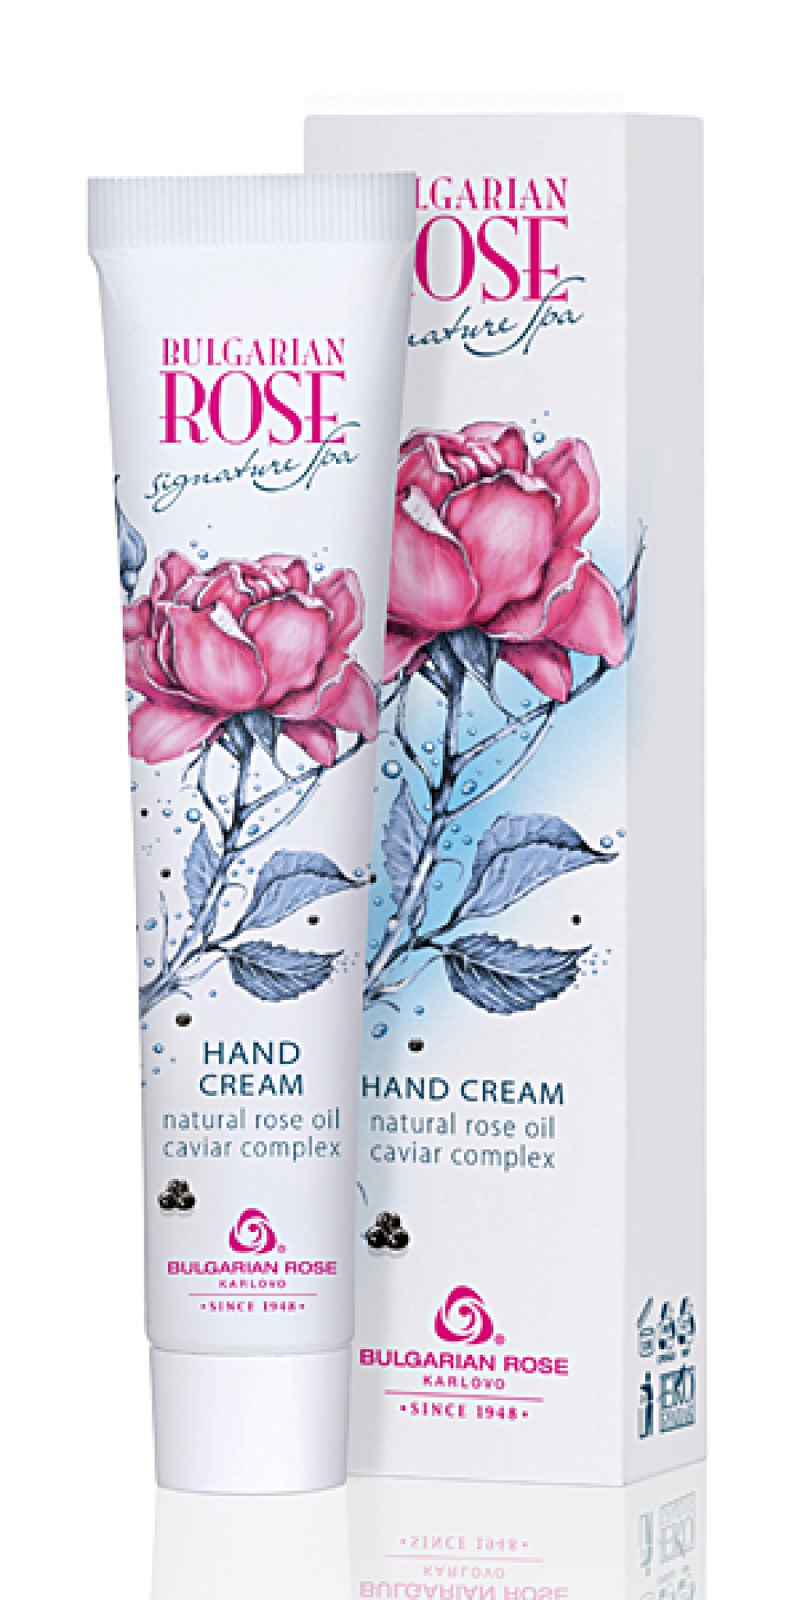 Nourishing hand cream Signature Spa Bulgarian Rose Karlovo